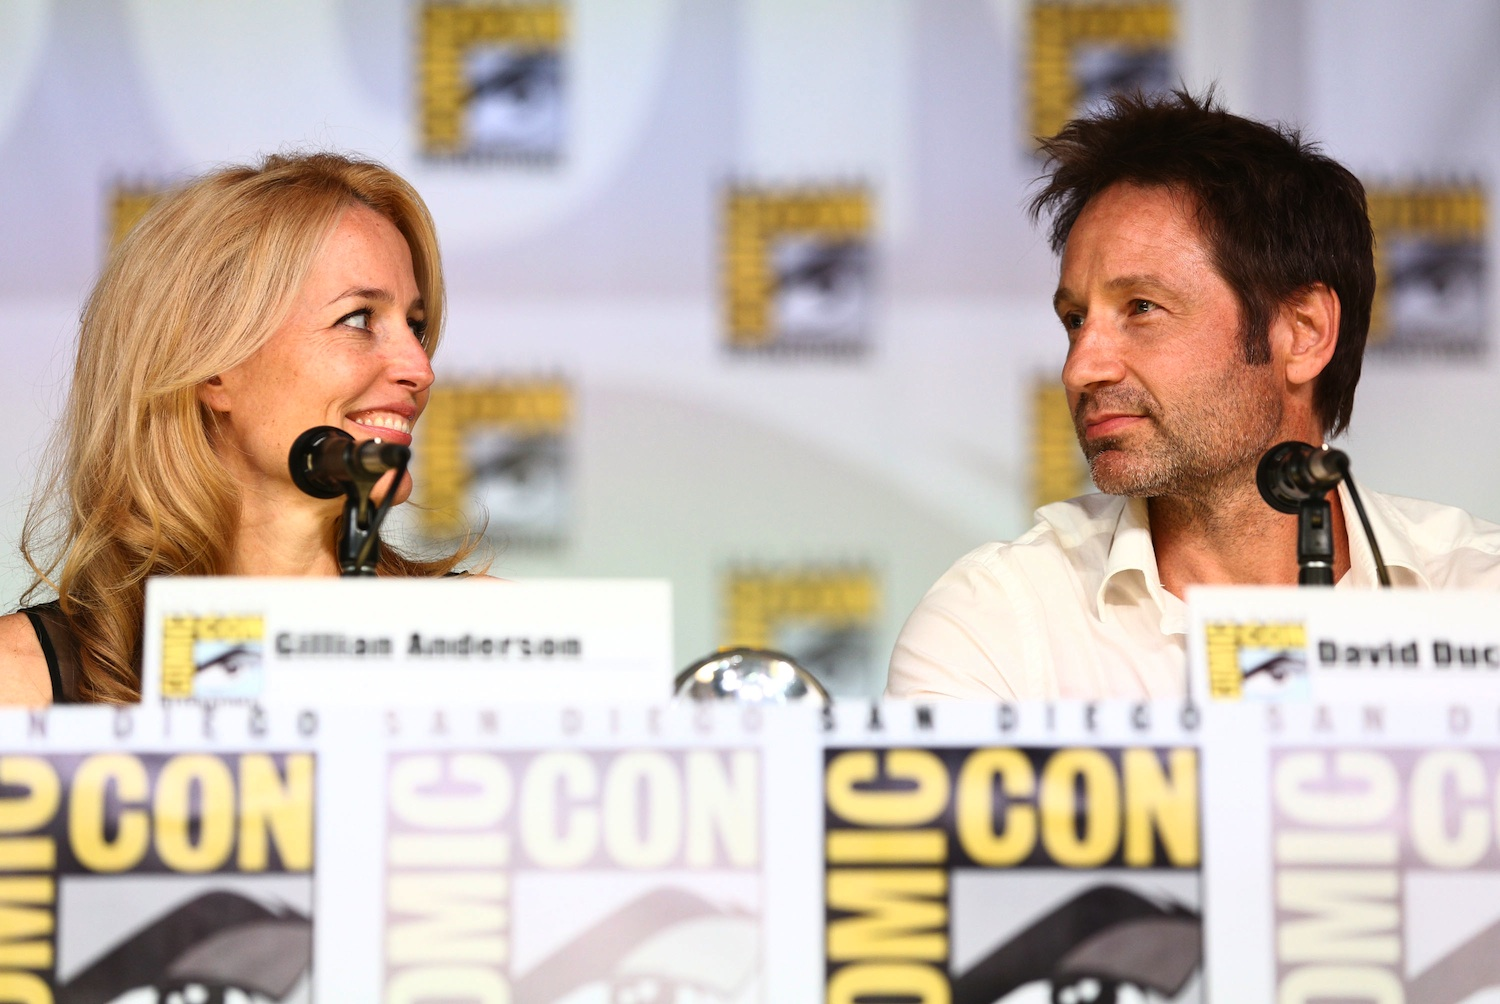 <> at San Diego Convention Center on July 18, 2013 in San Diego, California.